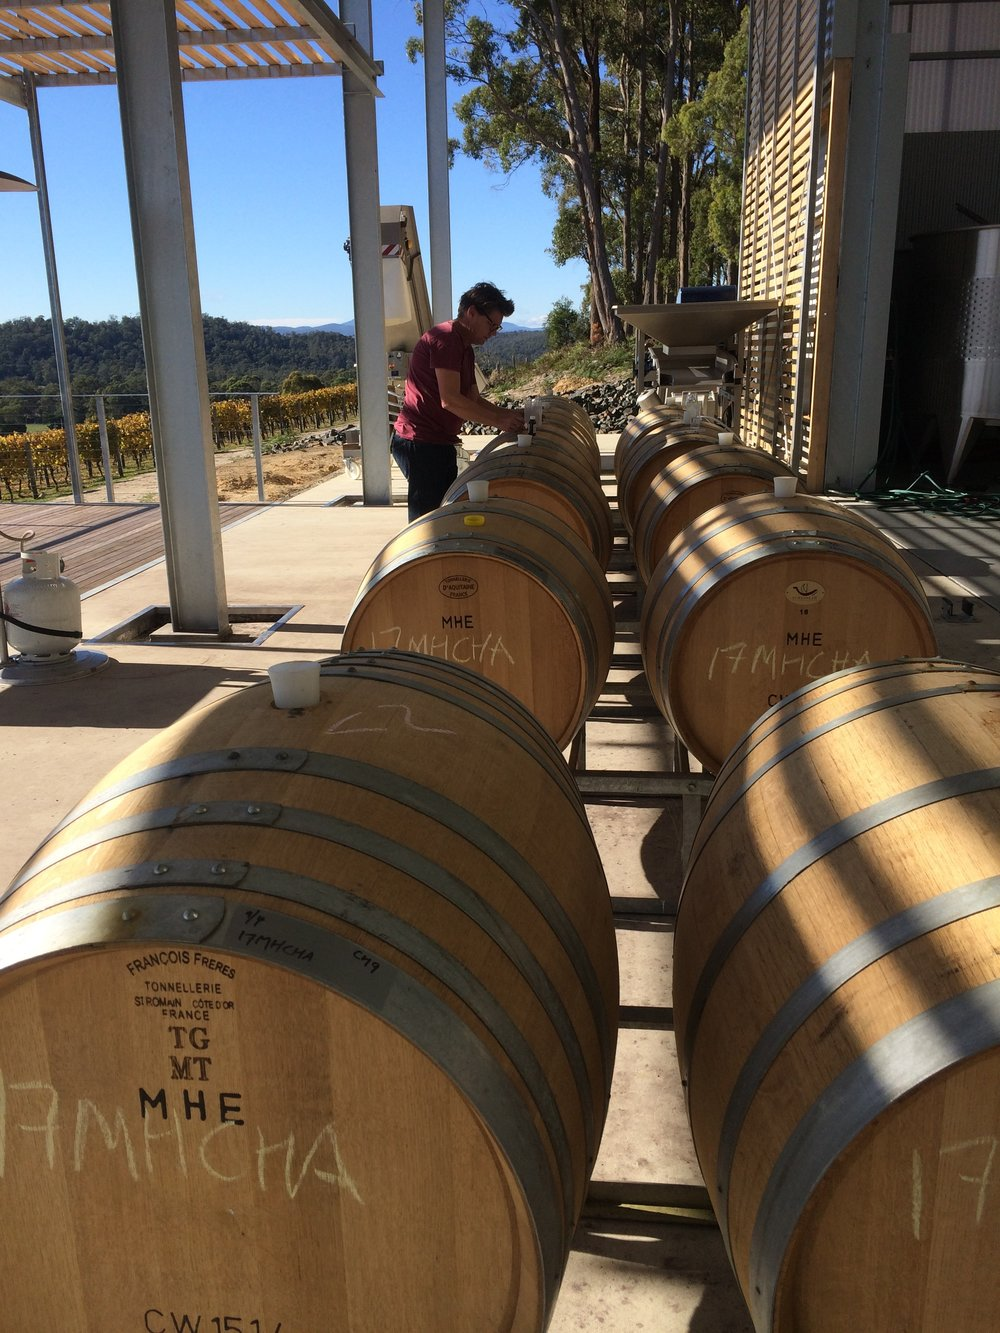 Checking on the progress of the Chardonnay fermenting in barrel. Not a bad office for our winemaker to work in.